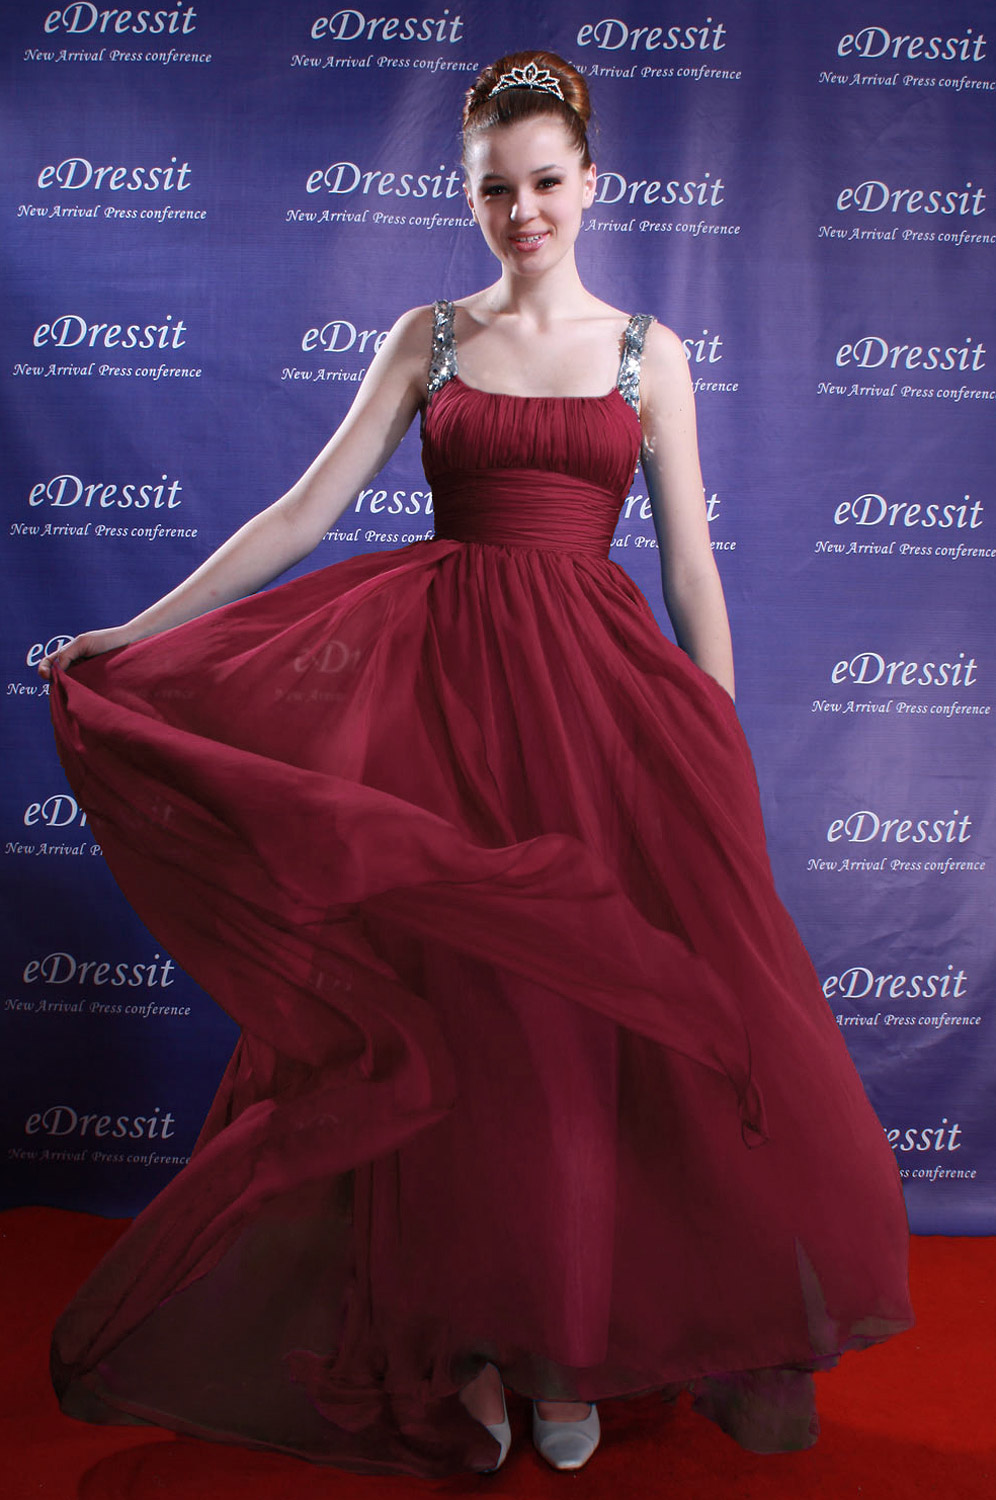 On sale !! eDressit wein Rot Prom Gown Evening Dress (00080905f)